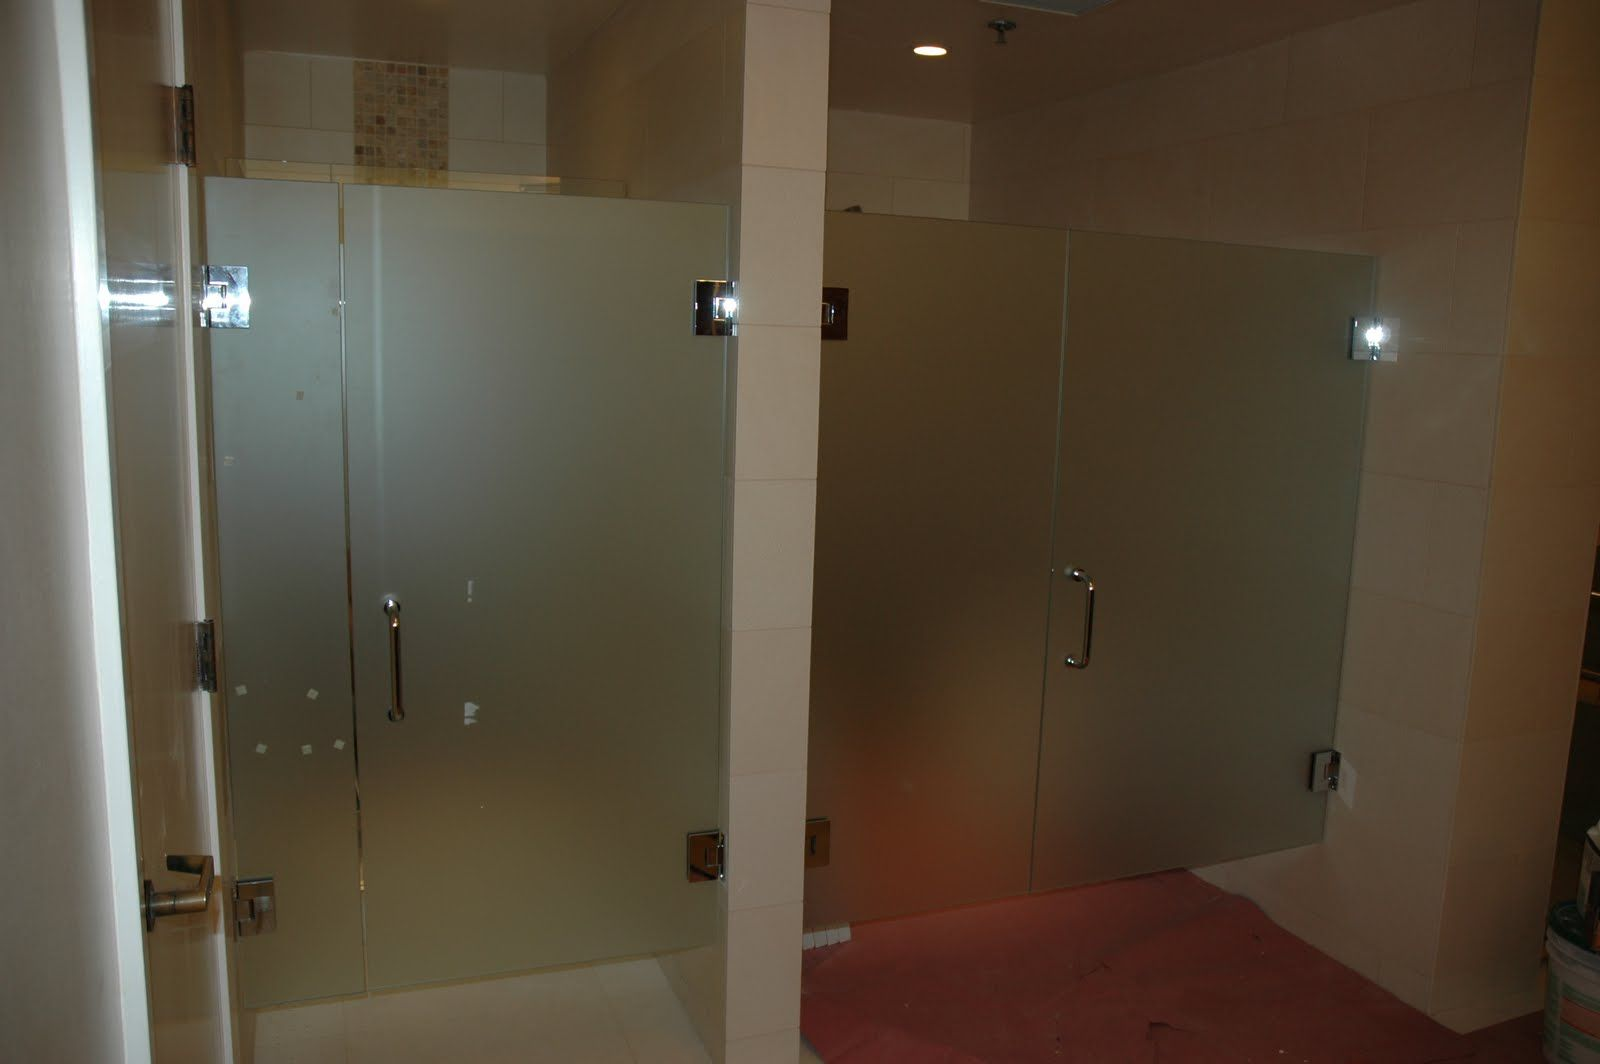 frosted shower doors. Gorgeous Glass Shower Doors For Your Contemporary Bathroom Design: Impressive Frosted With